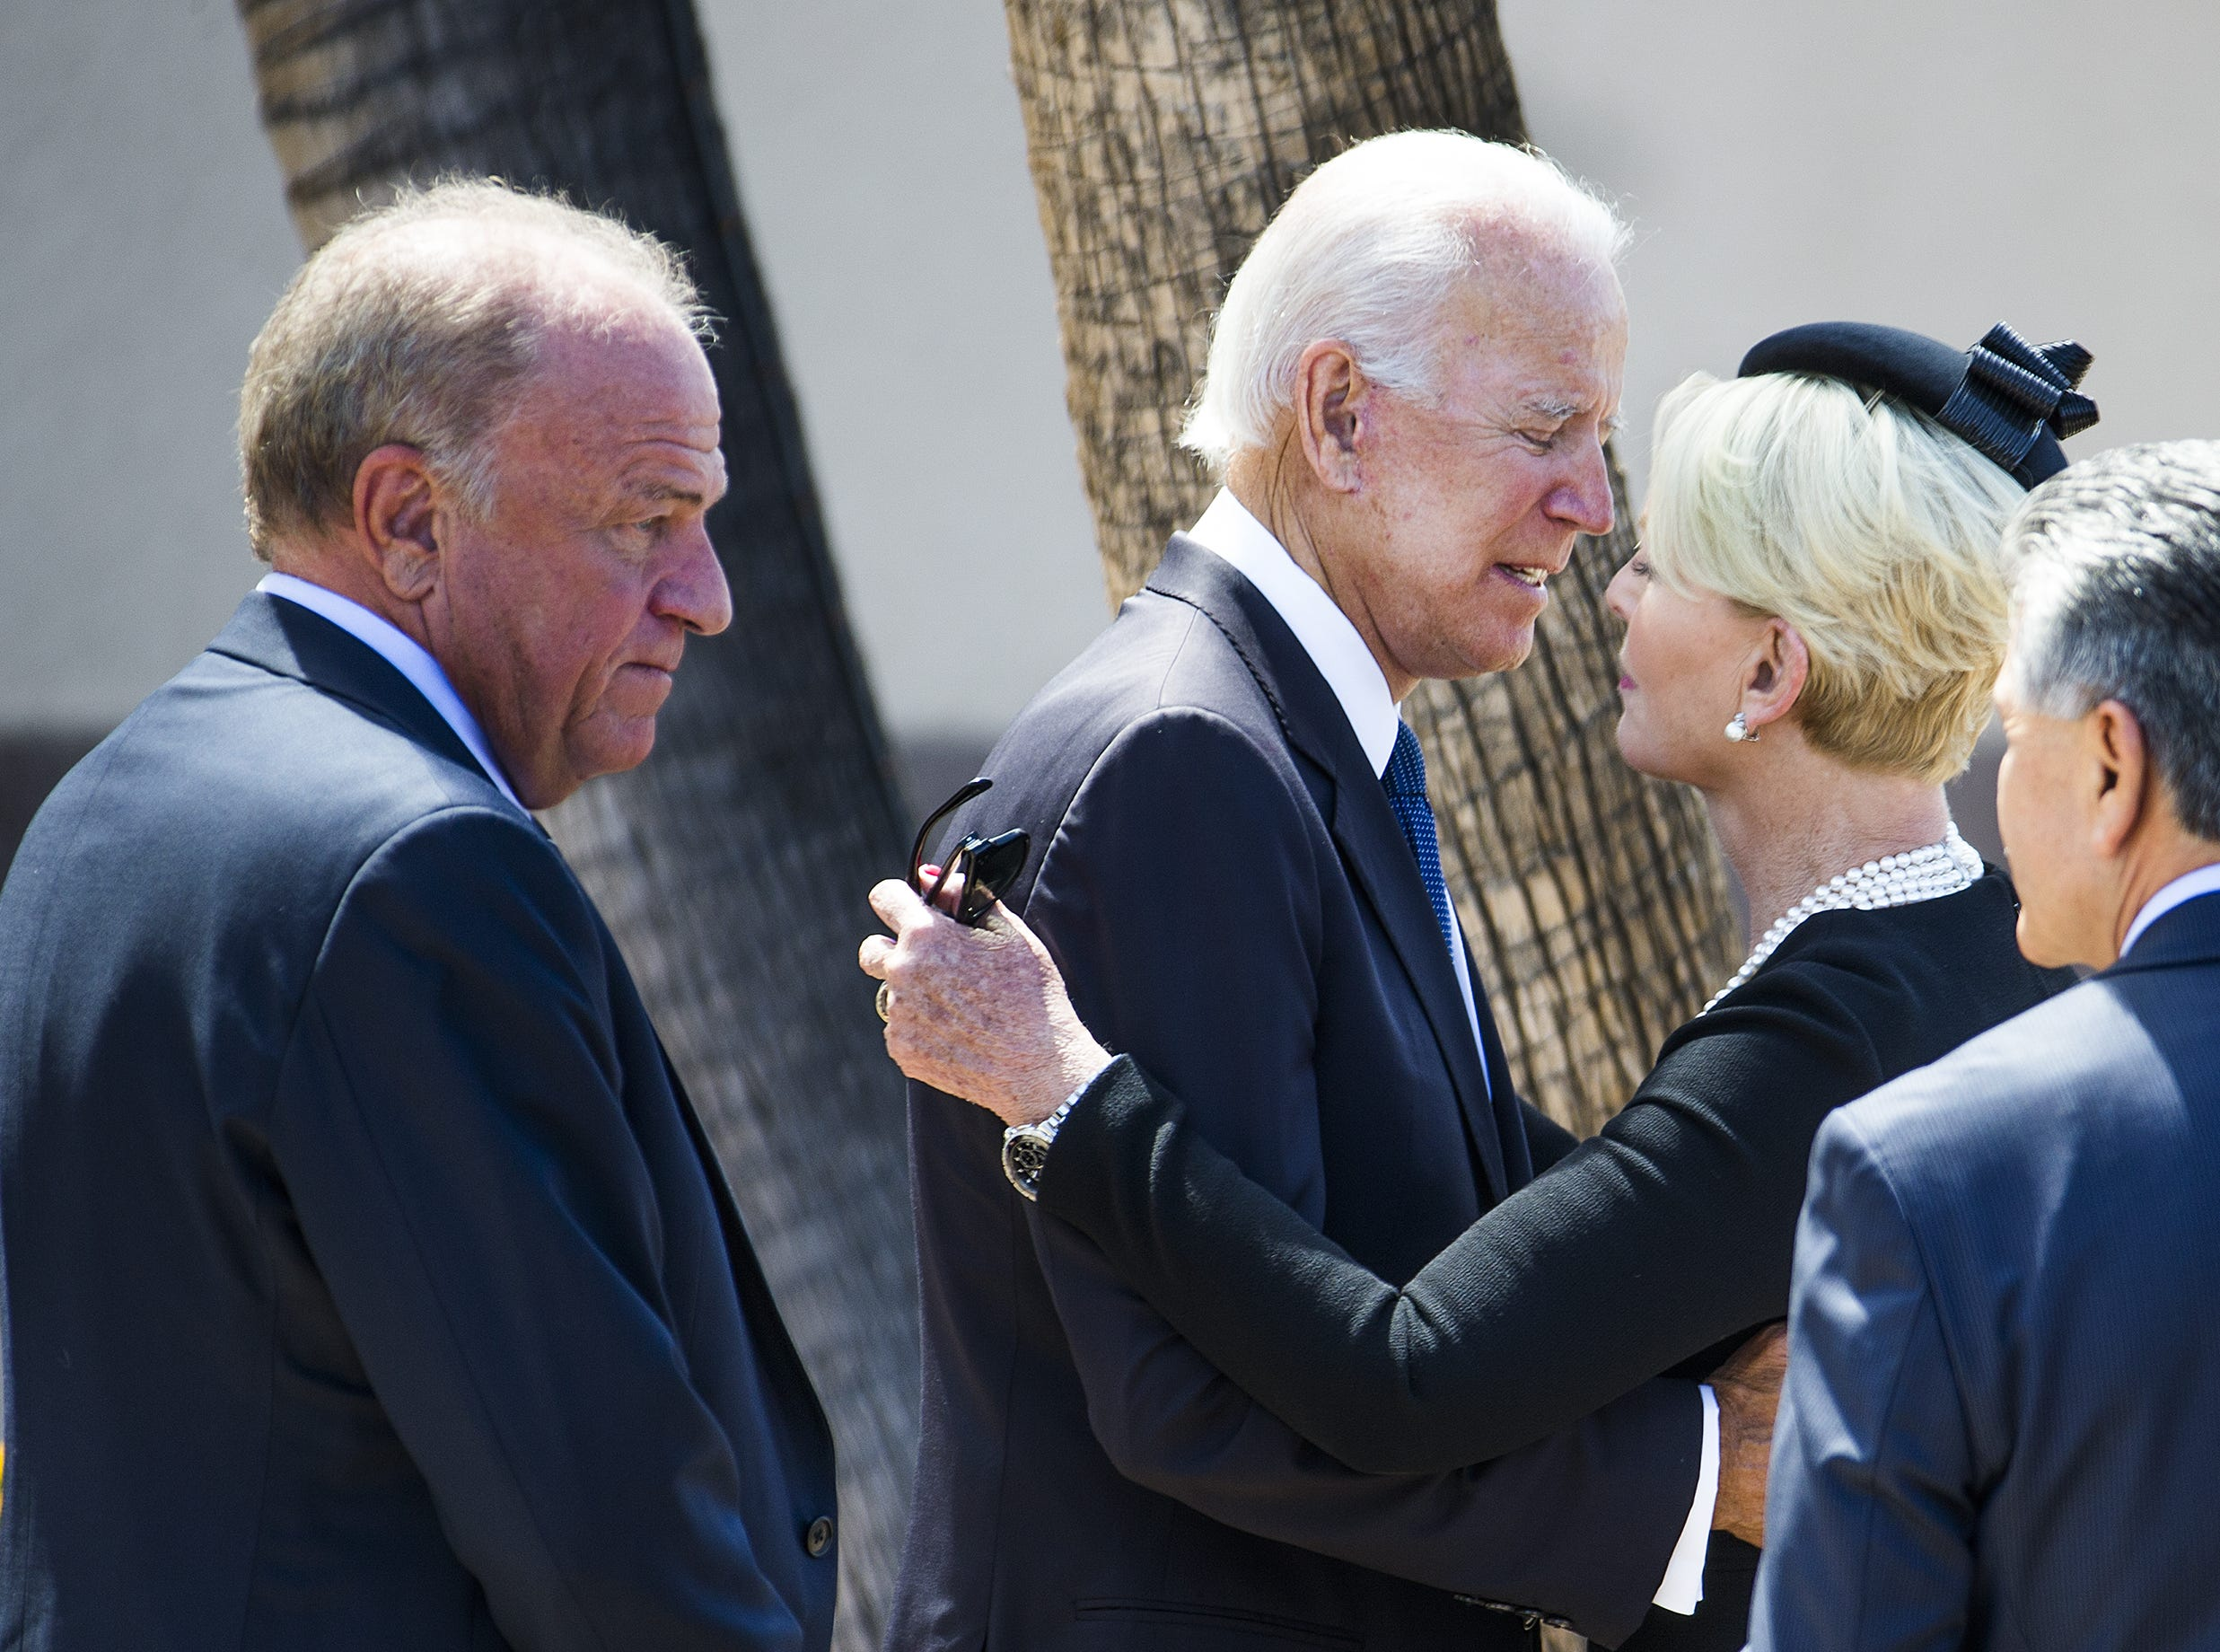 Former Vice President Joe Biden says goodbye to Cindy McCain after a memorial service for Sen. John McCain at North Phoenix Baptist Church in Phoenix on Aug. 30, 2018.